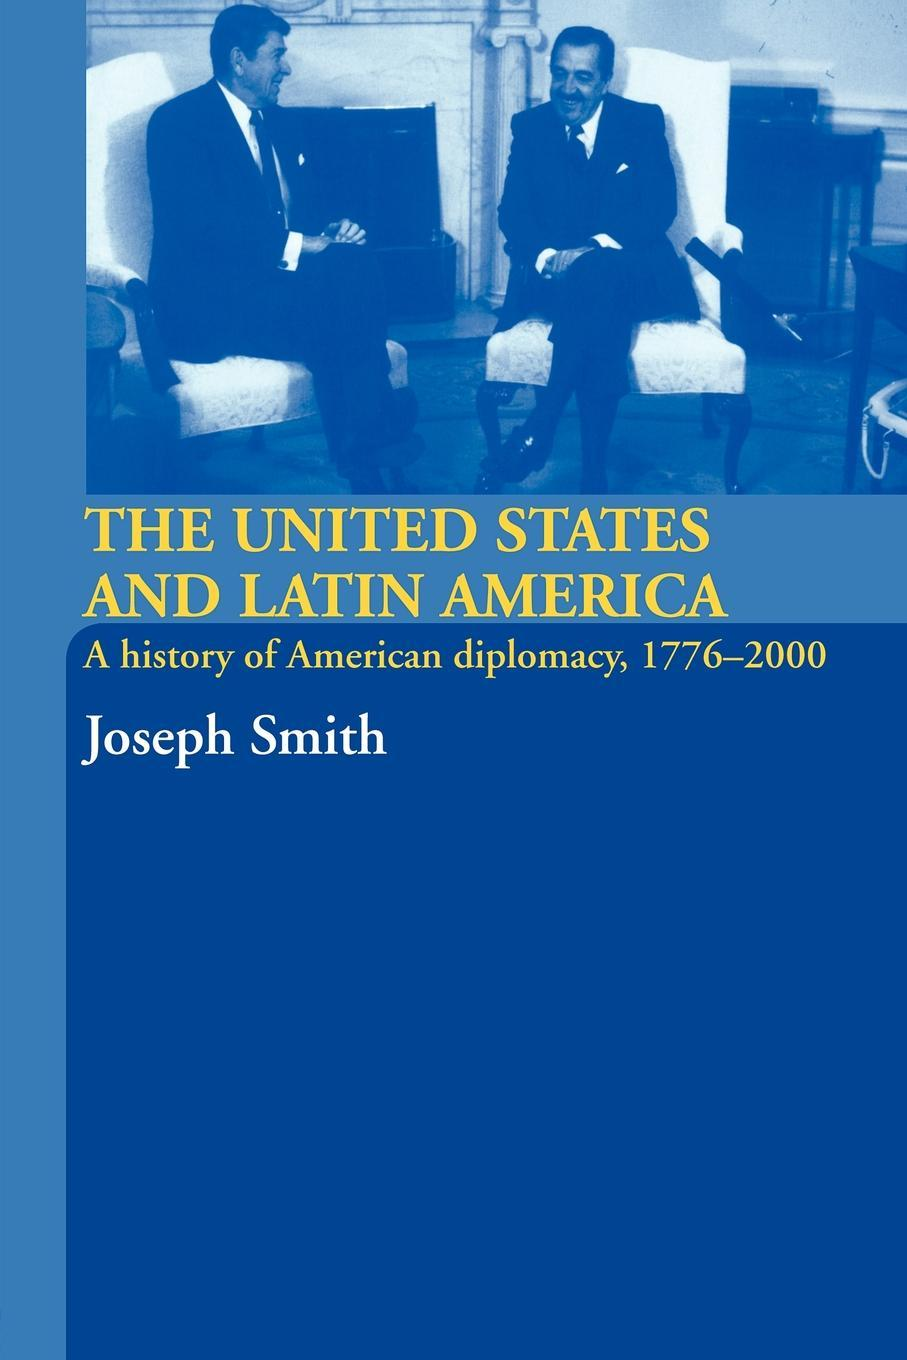 The United States and Latin America EB9780203004531